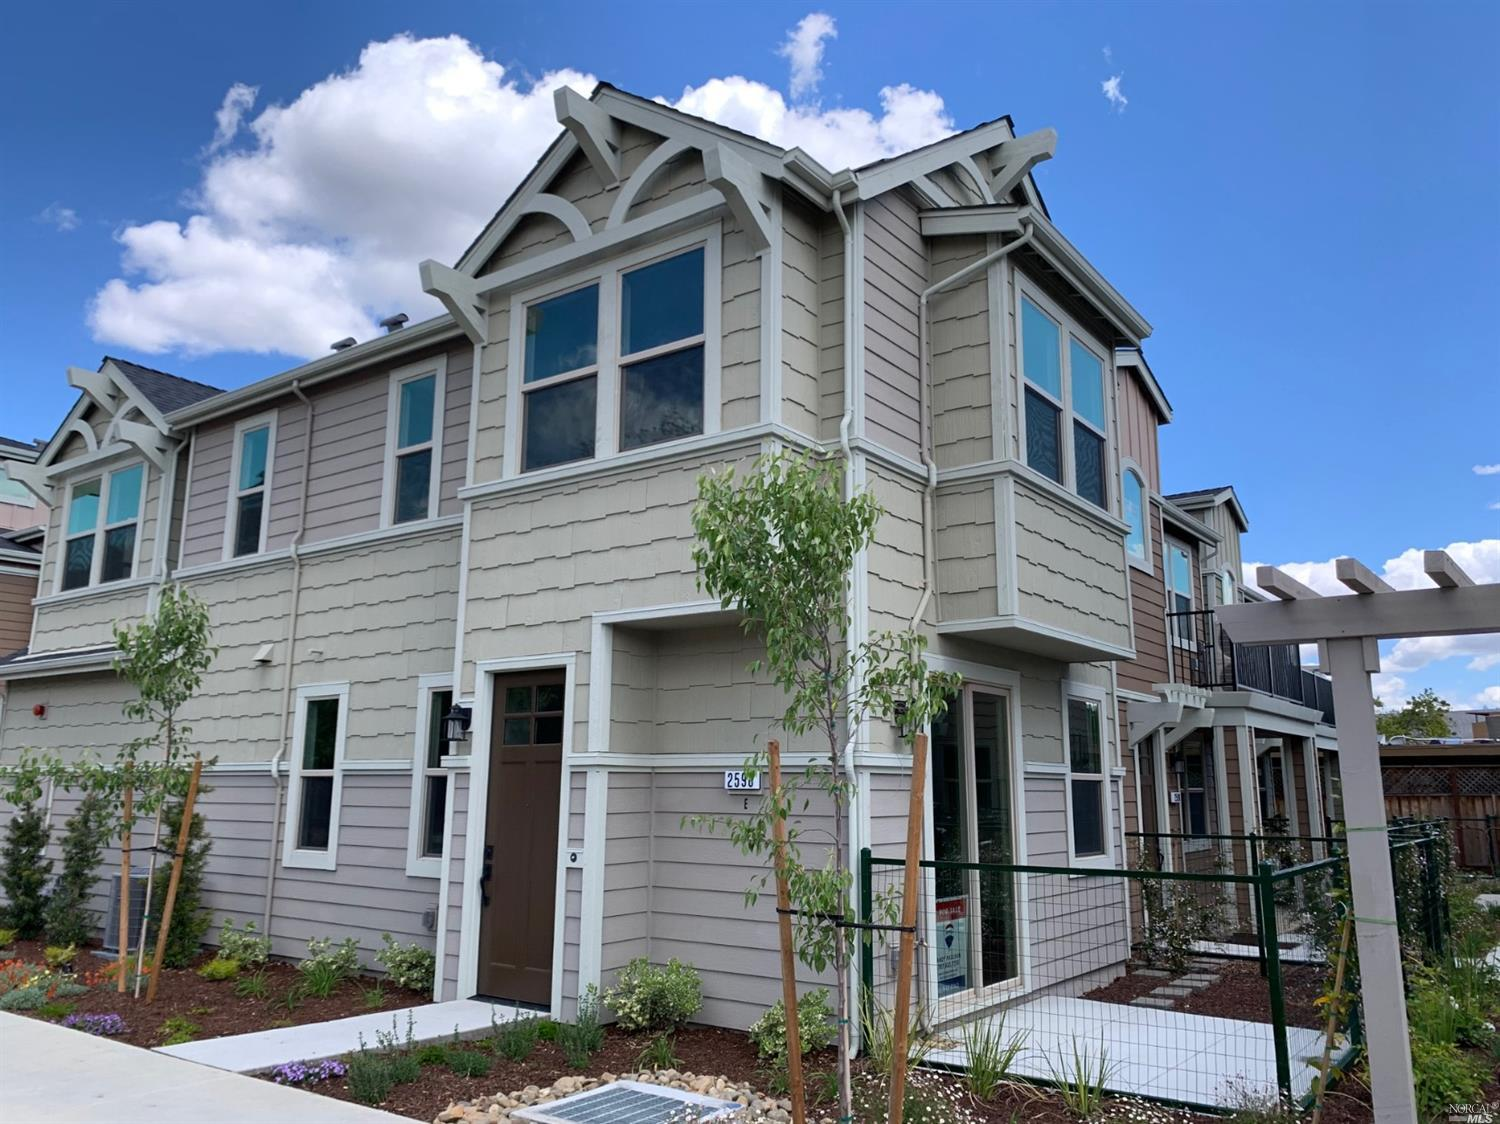 Photo of 2598 1st St #E in 纳帕, CA